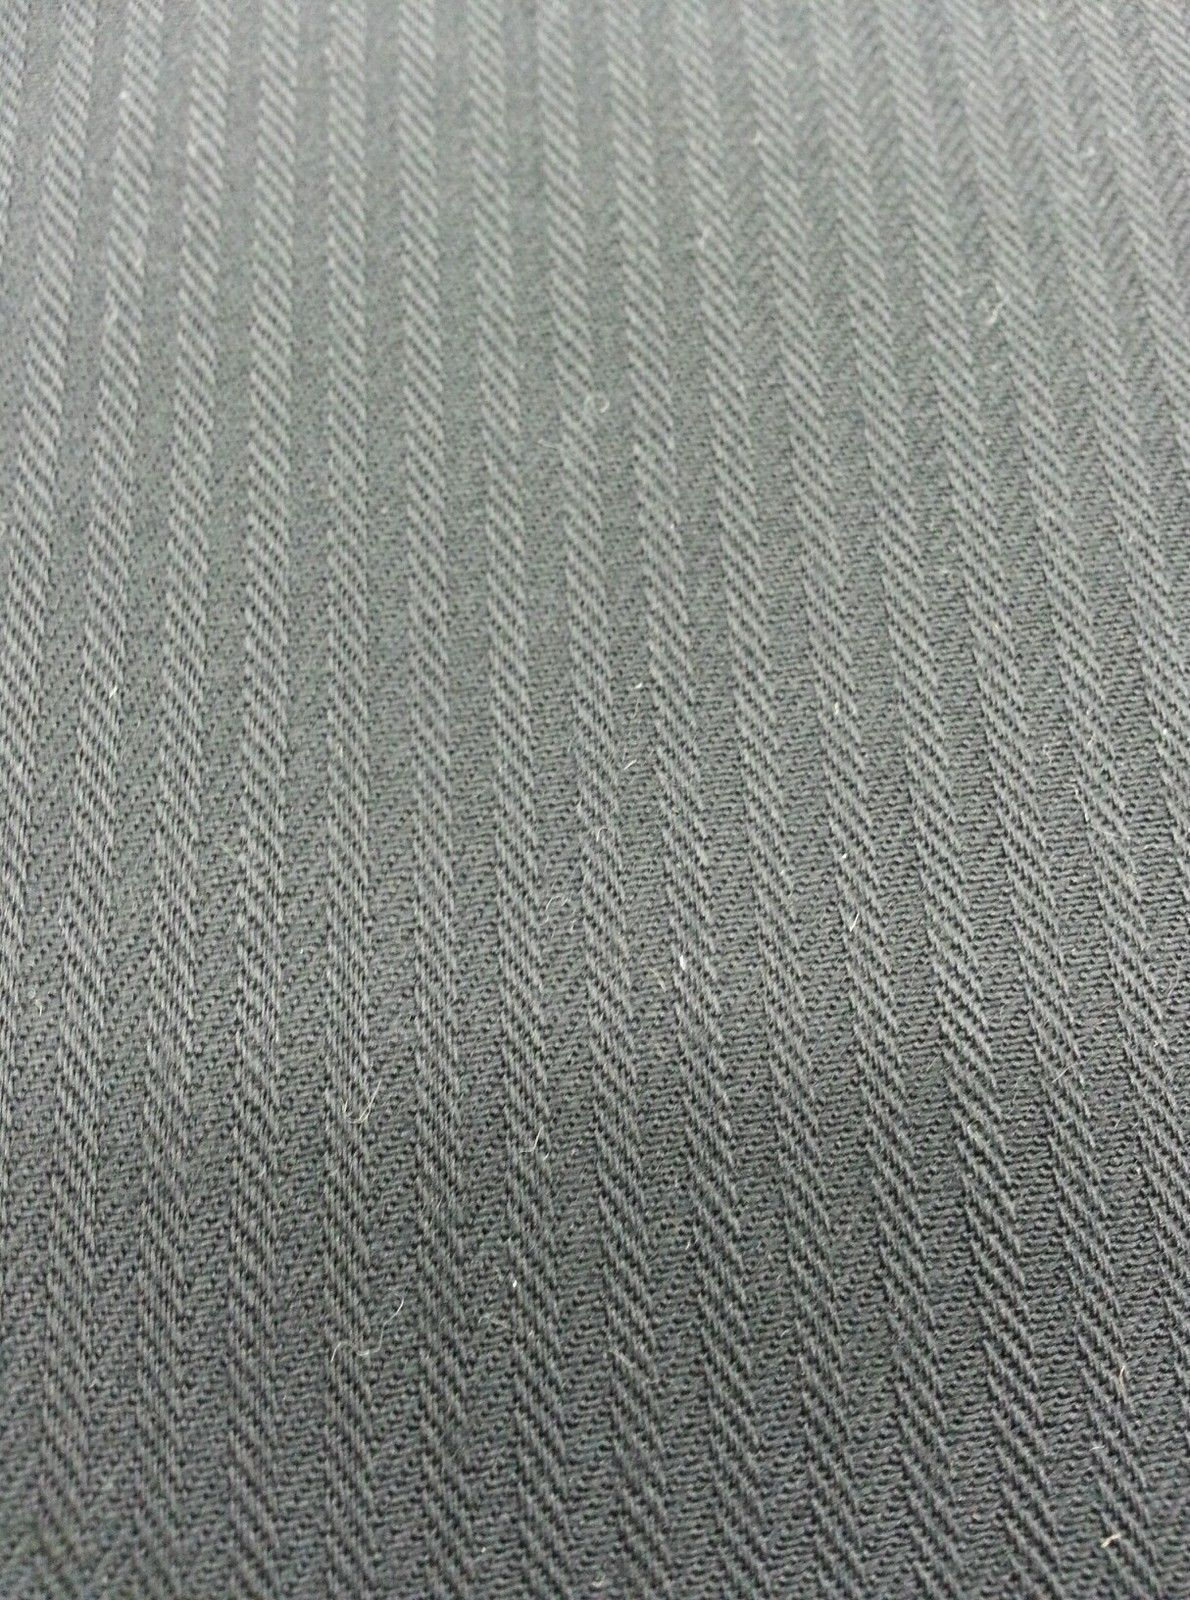 Navy Blue HeringBone Italian All Wool Worsted suiting fabric 5 Yards-MSRP $895